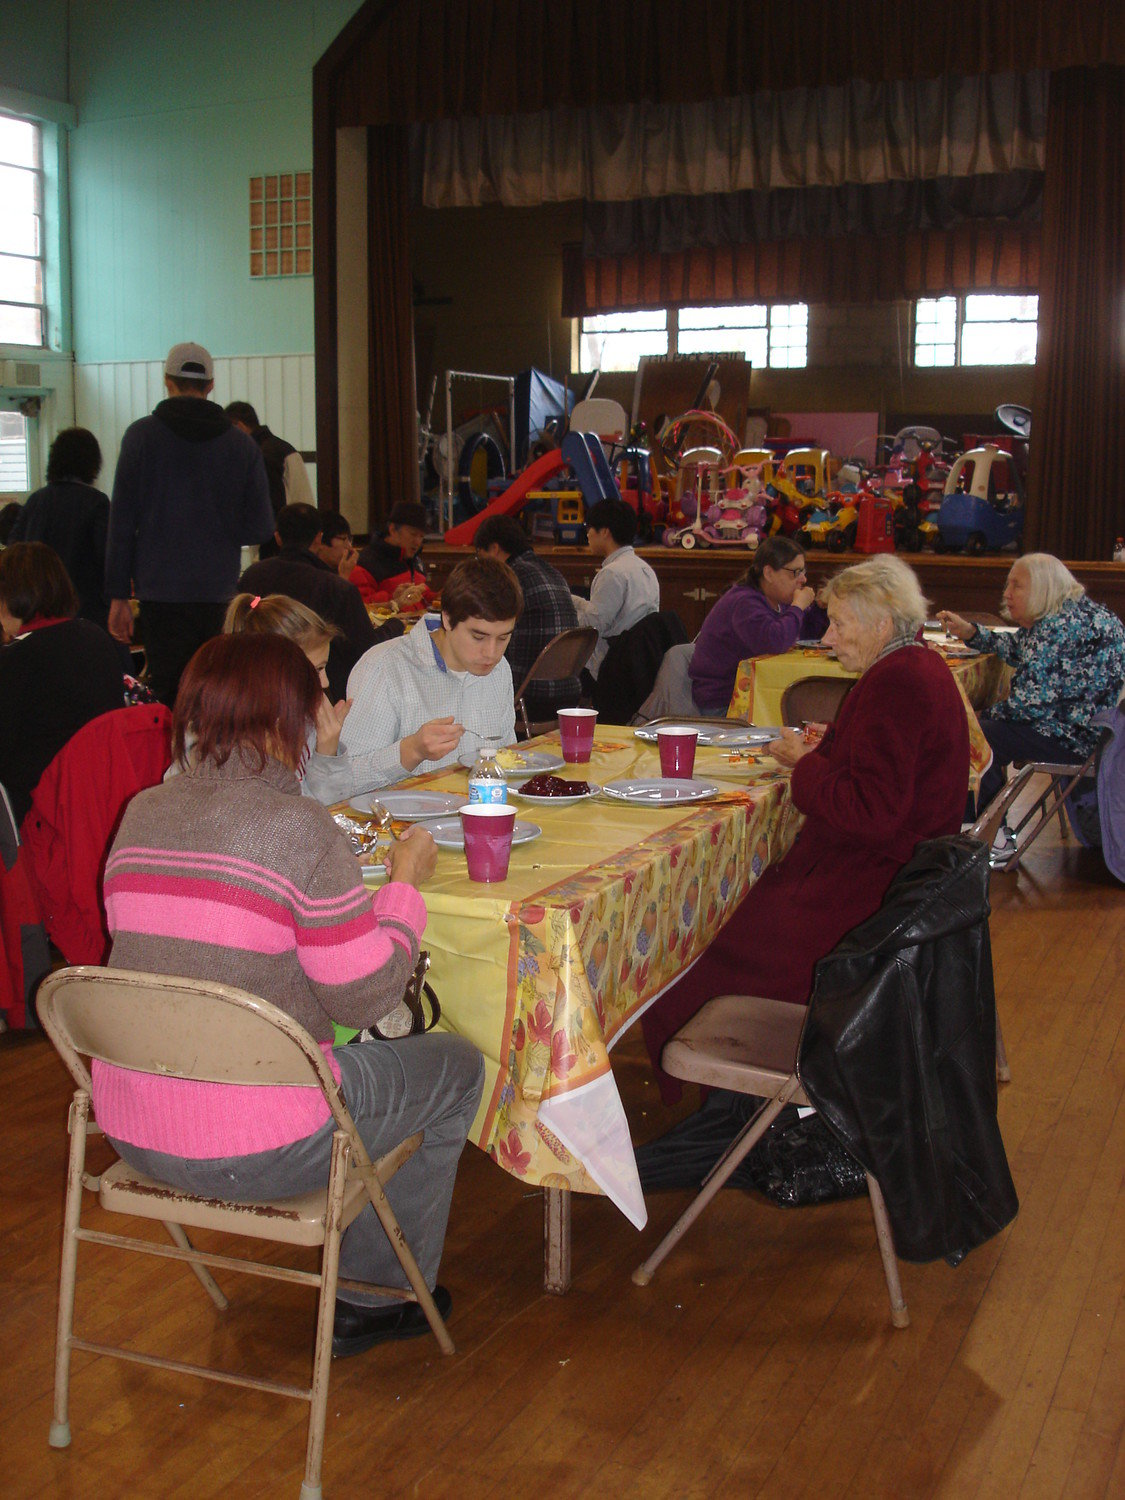 Bethany Congregational Church hosts a free Thanksgiving meal, open to all, on Nov. 28 from noon to 3 p.m.